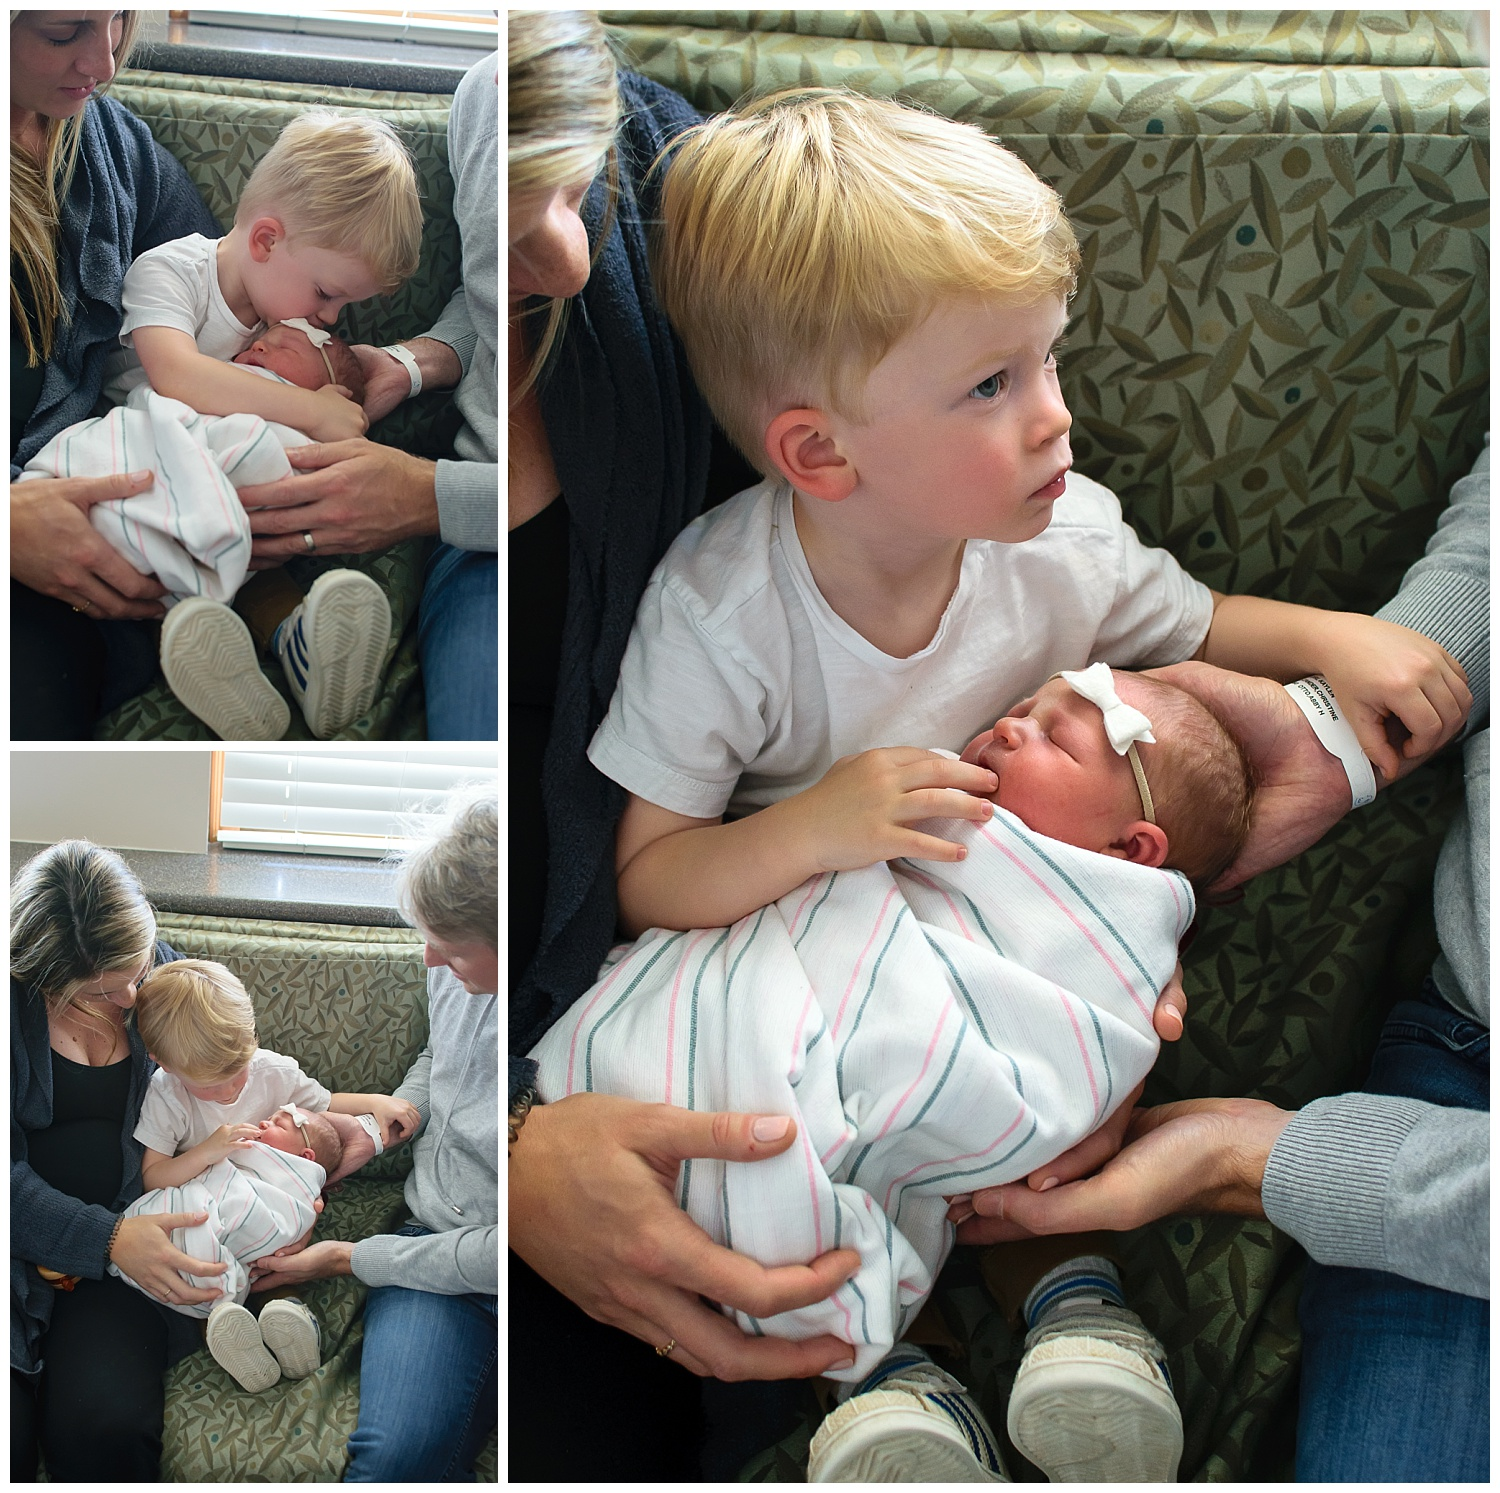 these are images of a toddler brother welcoming his new baby sister and holding and kissing her on the face as he holds his baby sister